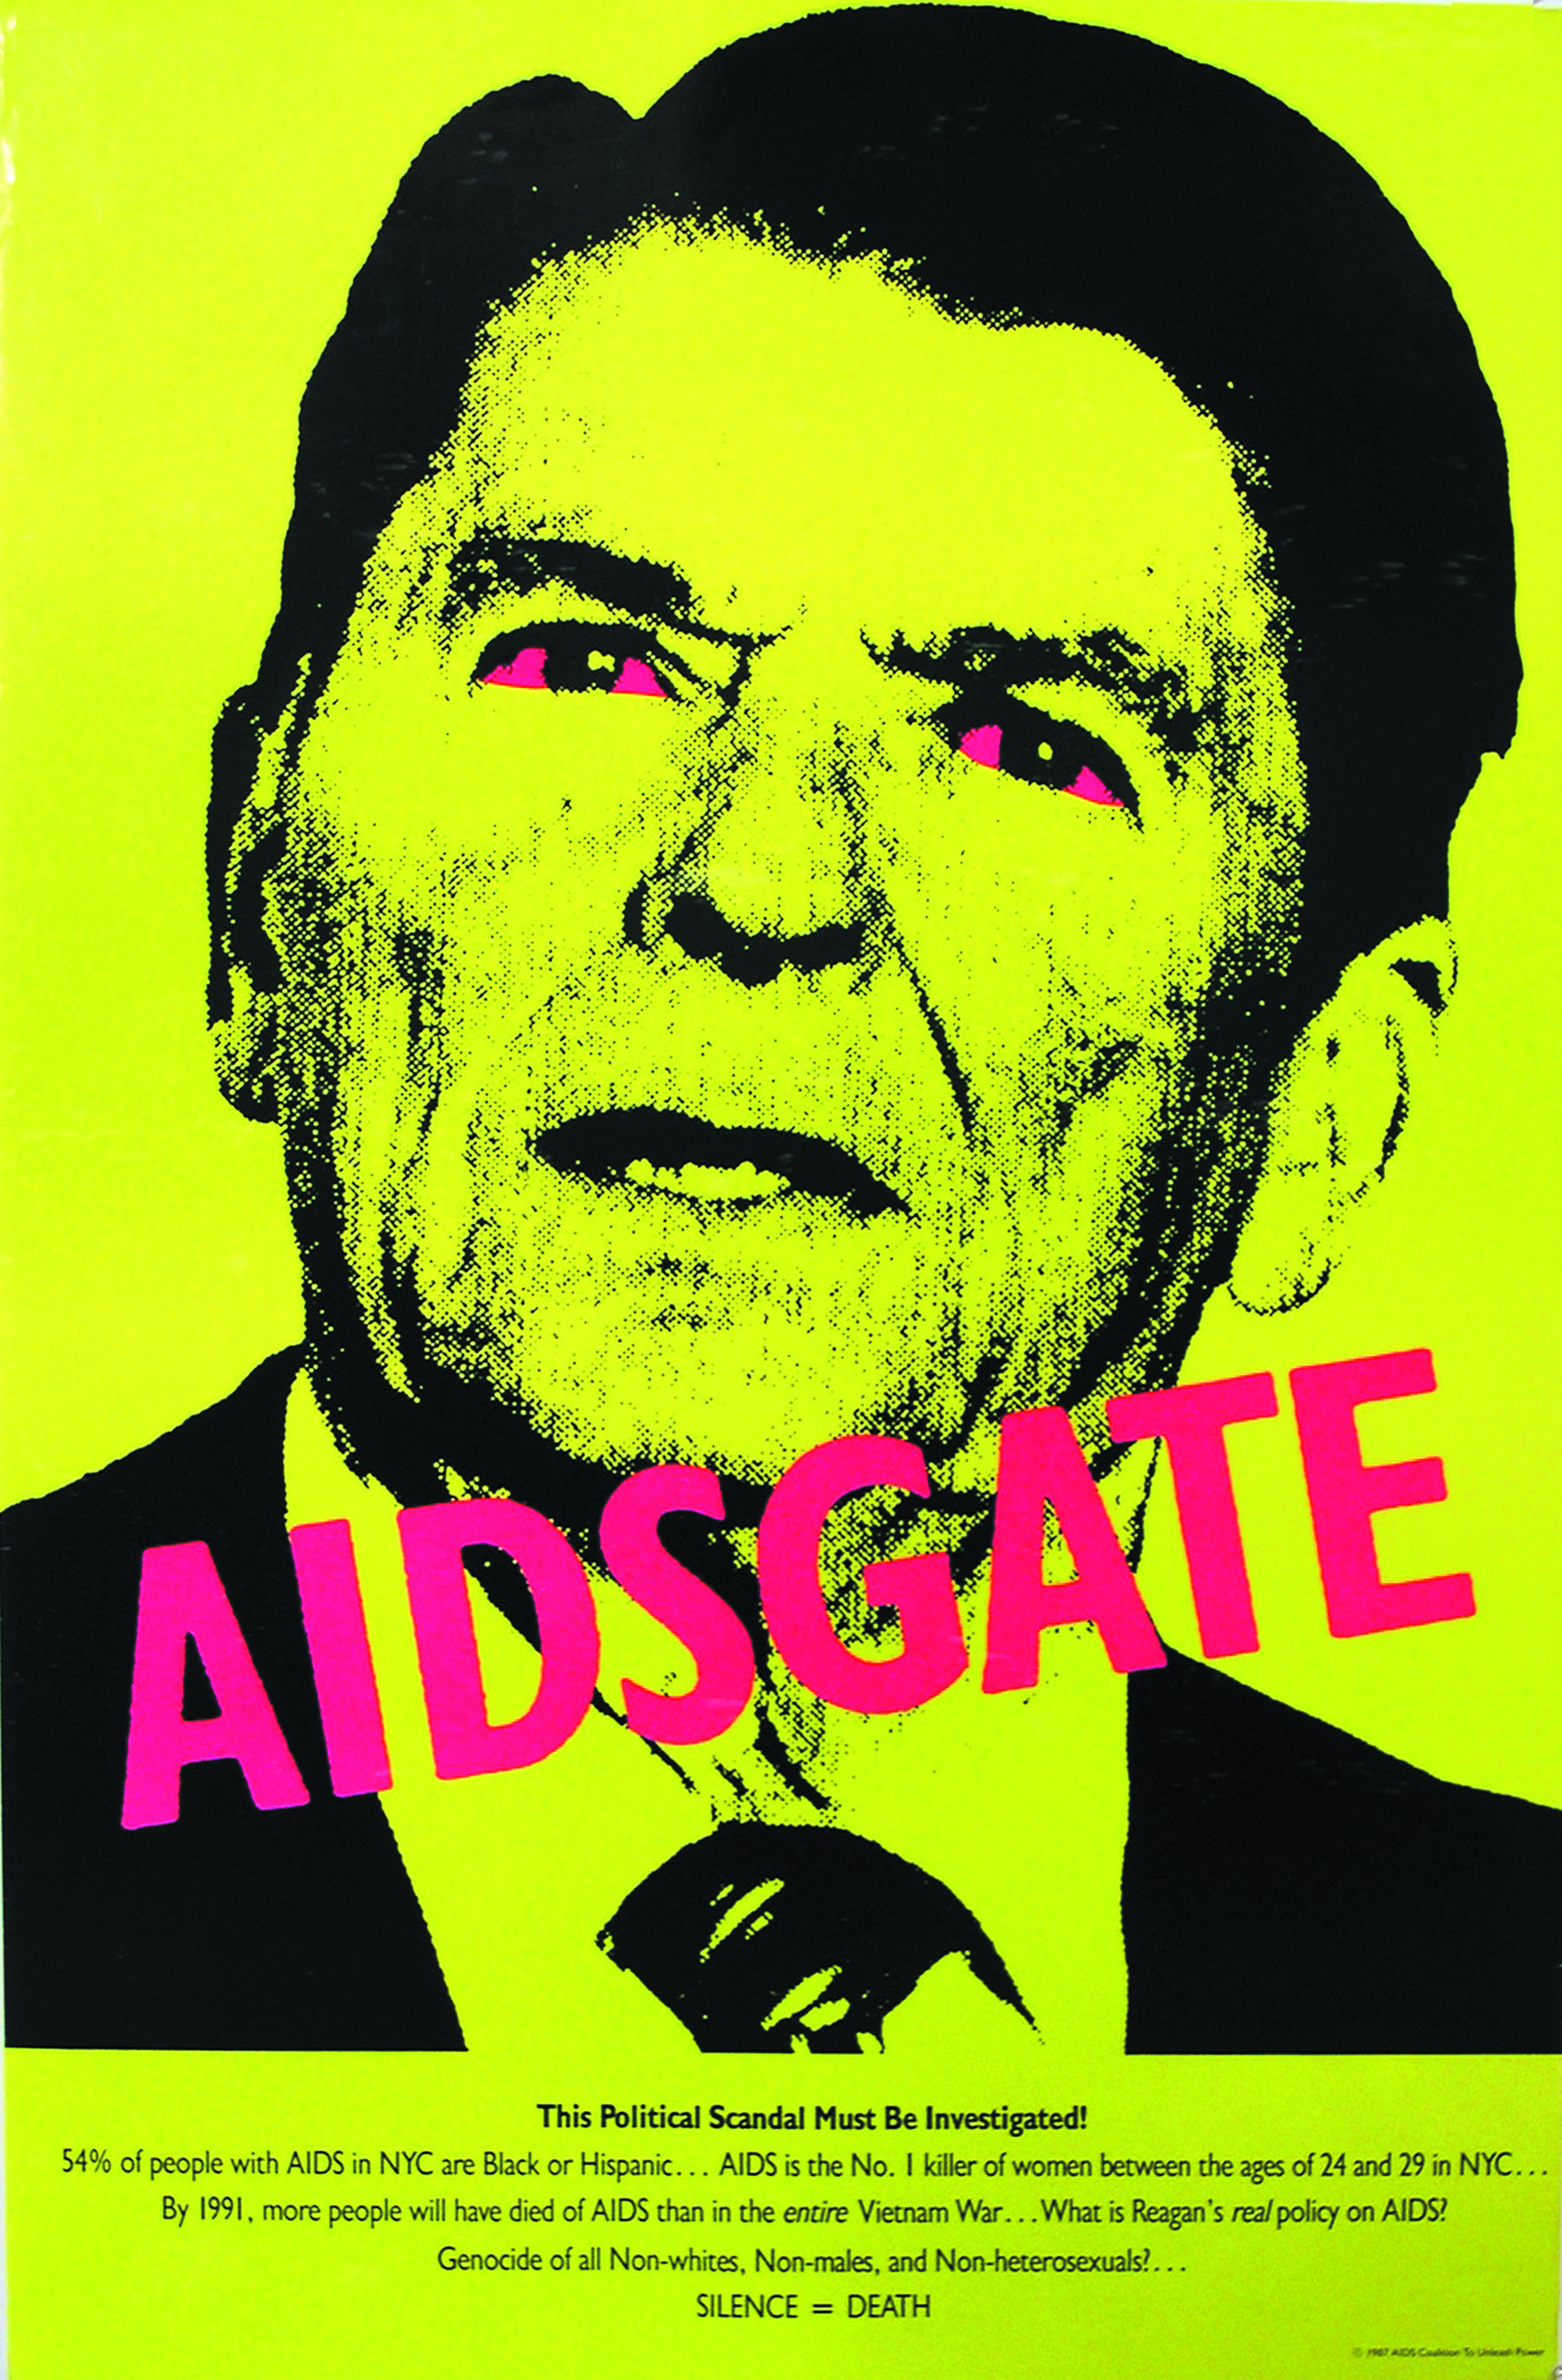 AIDSGATE,  The Silence = Death Project, 1987, poster, offset lithography